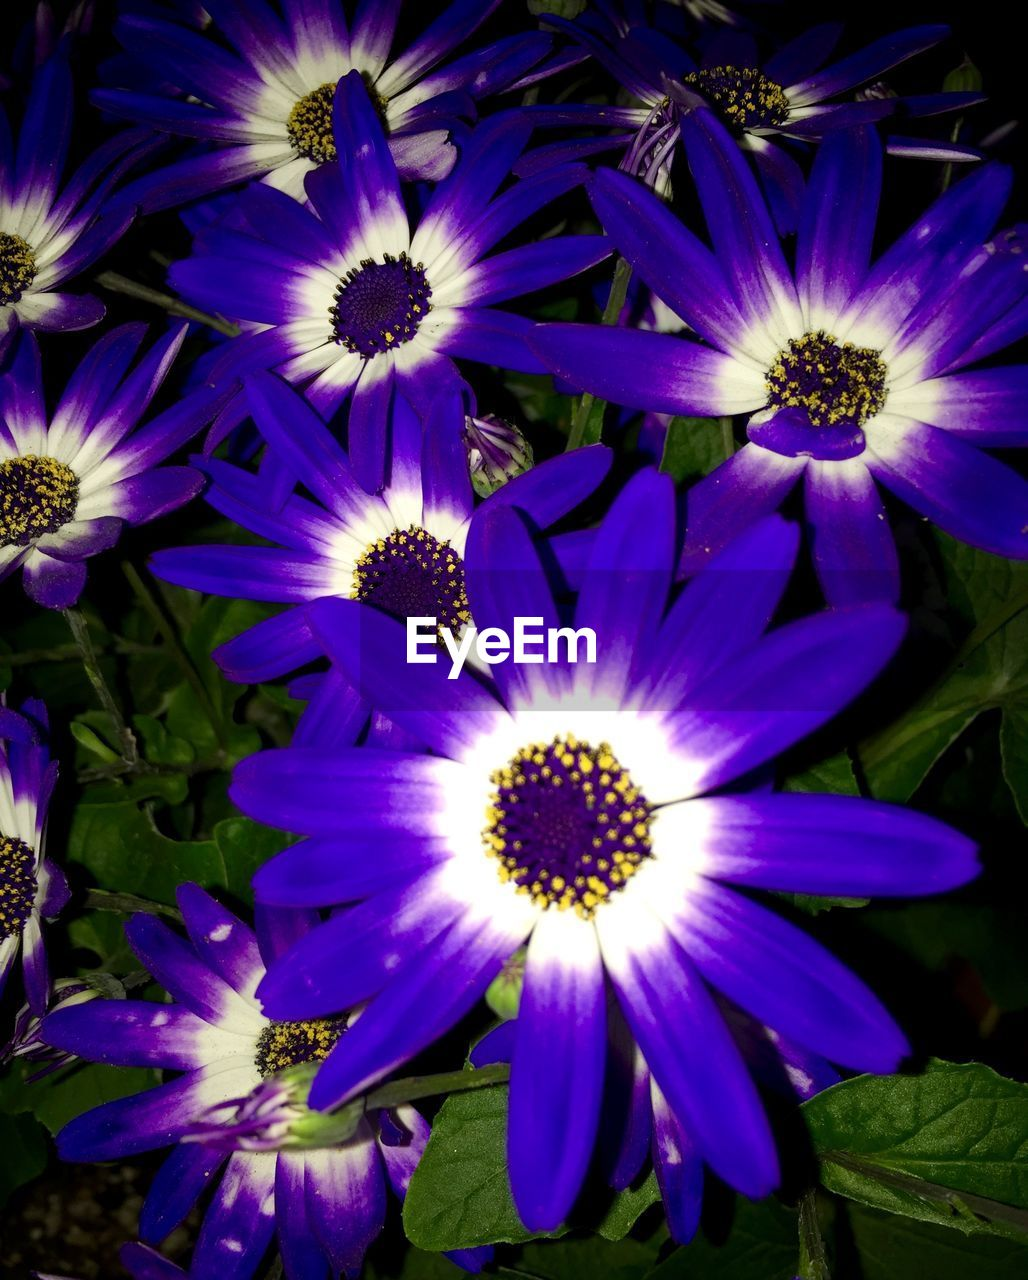 flower, petal, flower head, fragility, nature, beauty in nature, growth, freshness, purple, plant, blooming, osteospermum, no people, outdoors, day, close-up